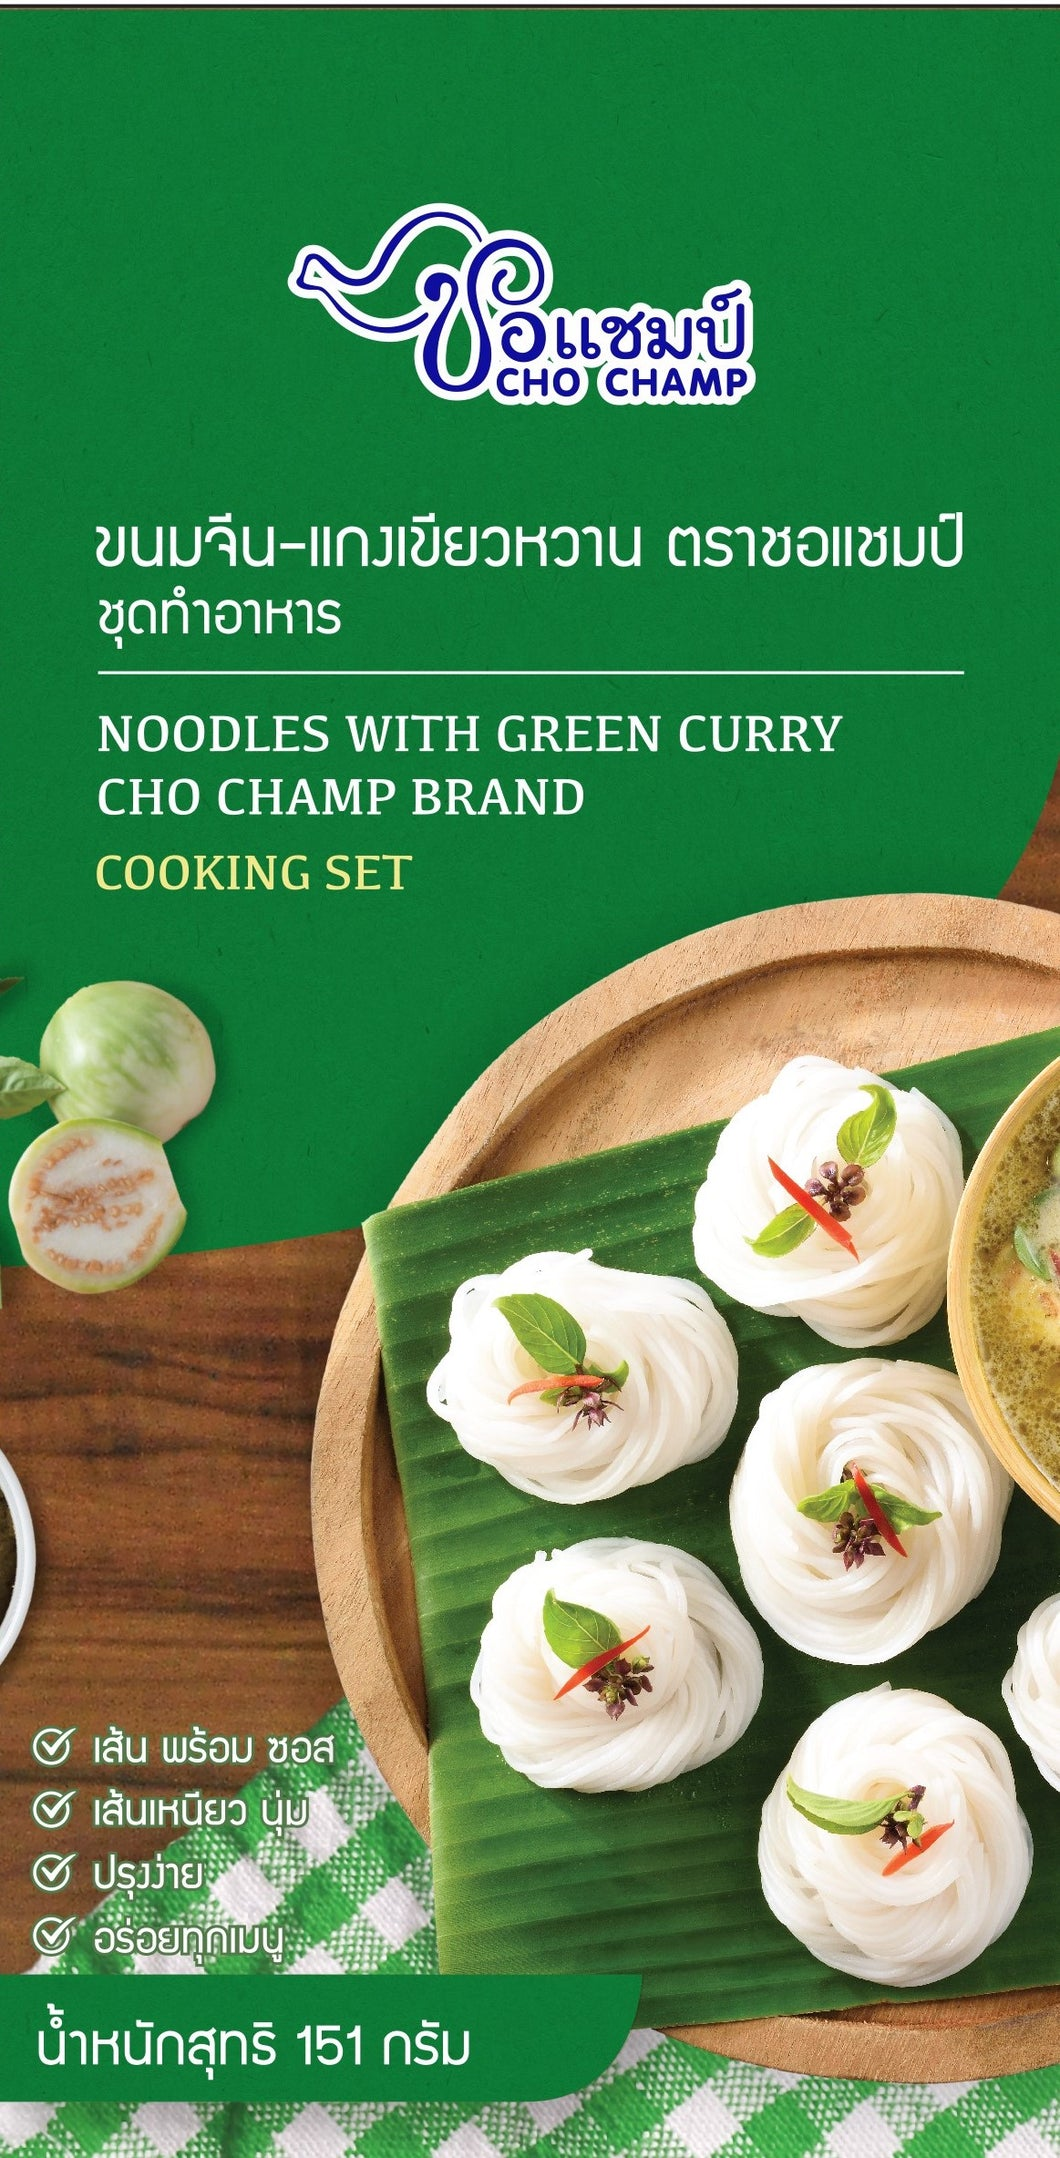 CHO CHAMP GREEN CURRY